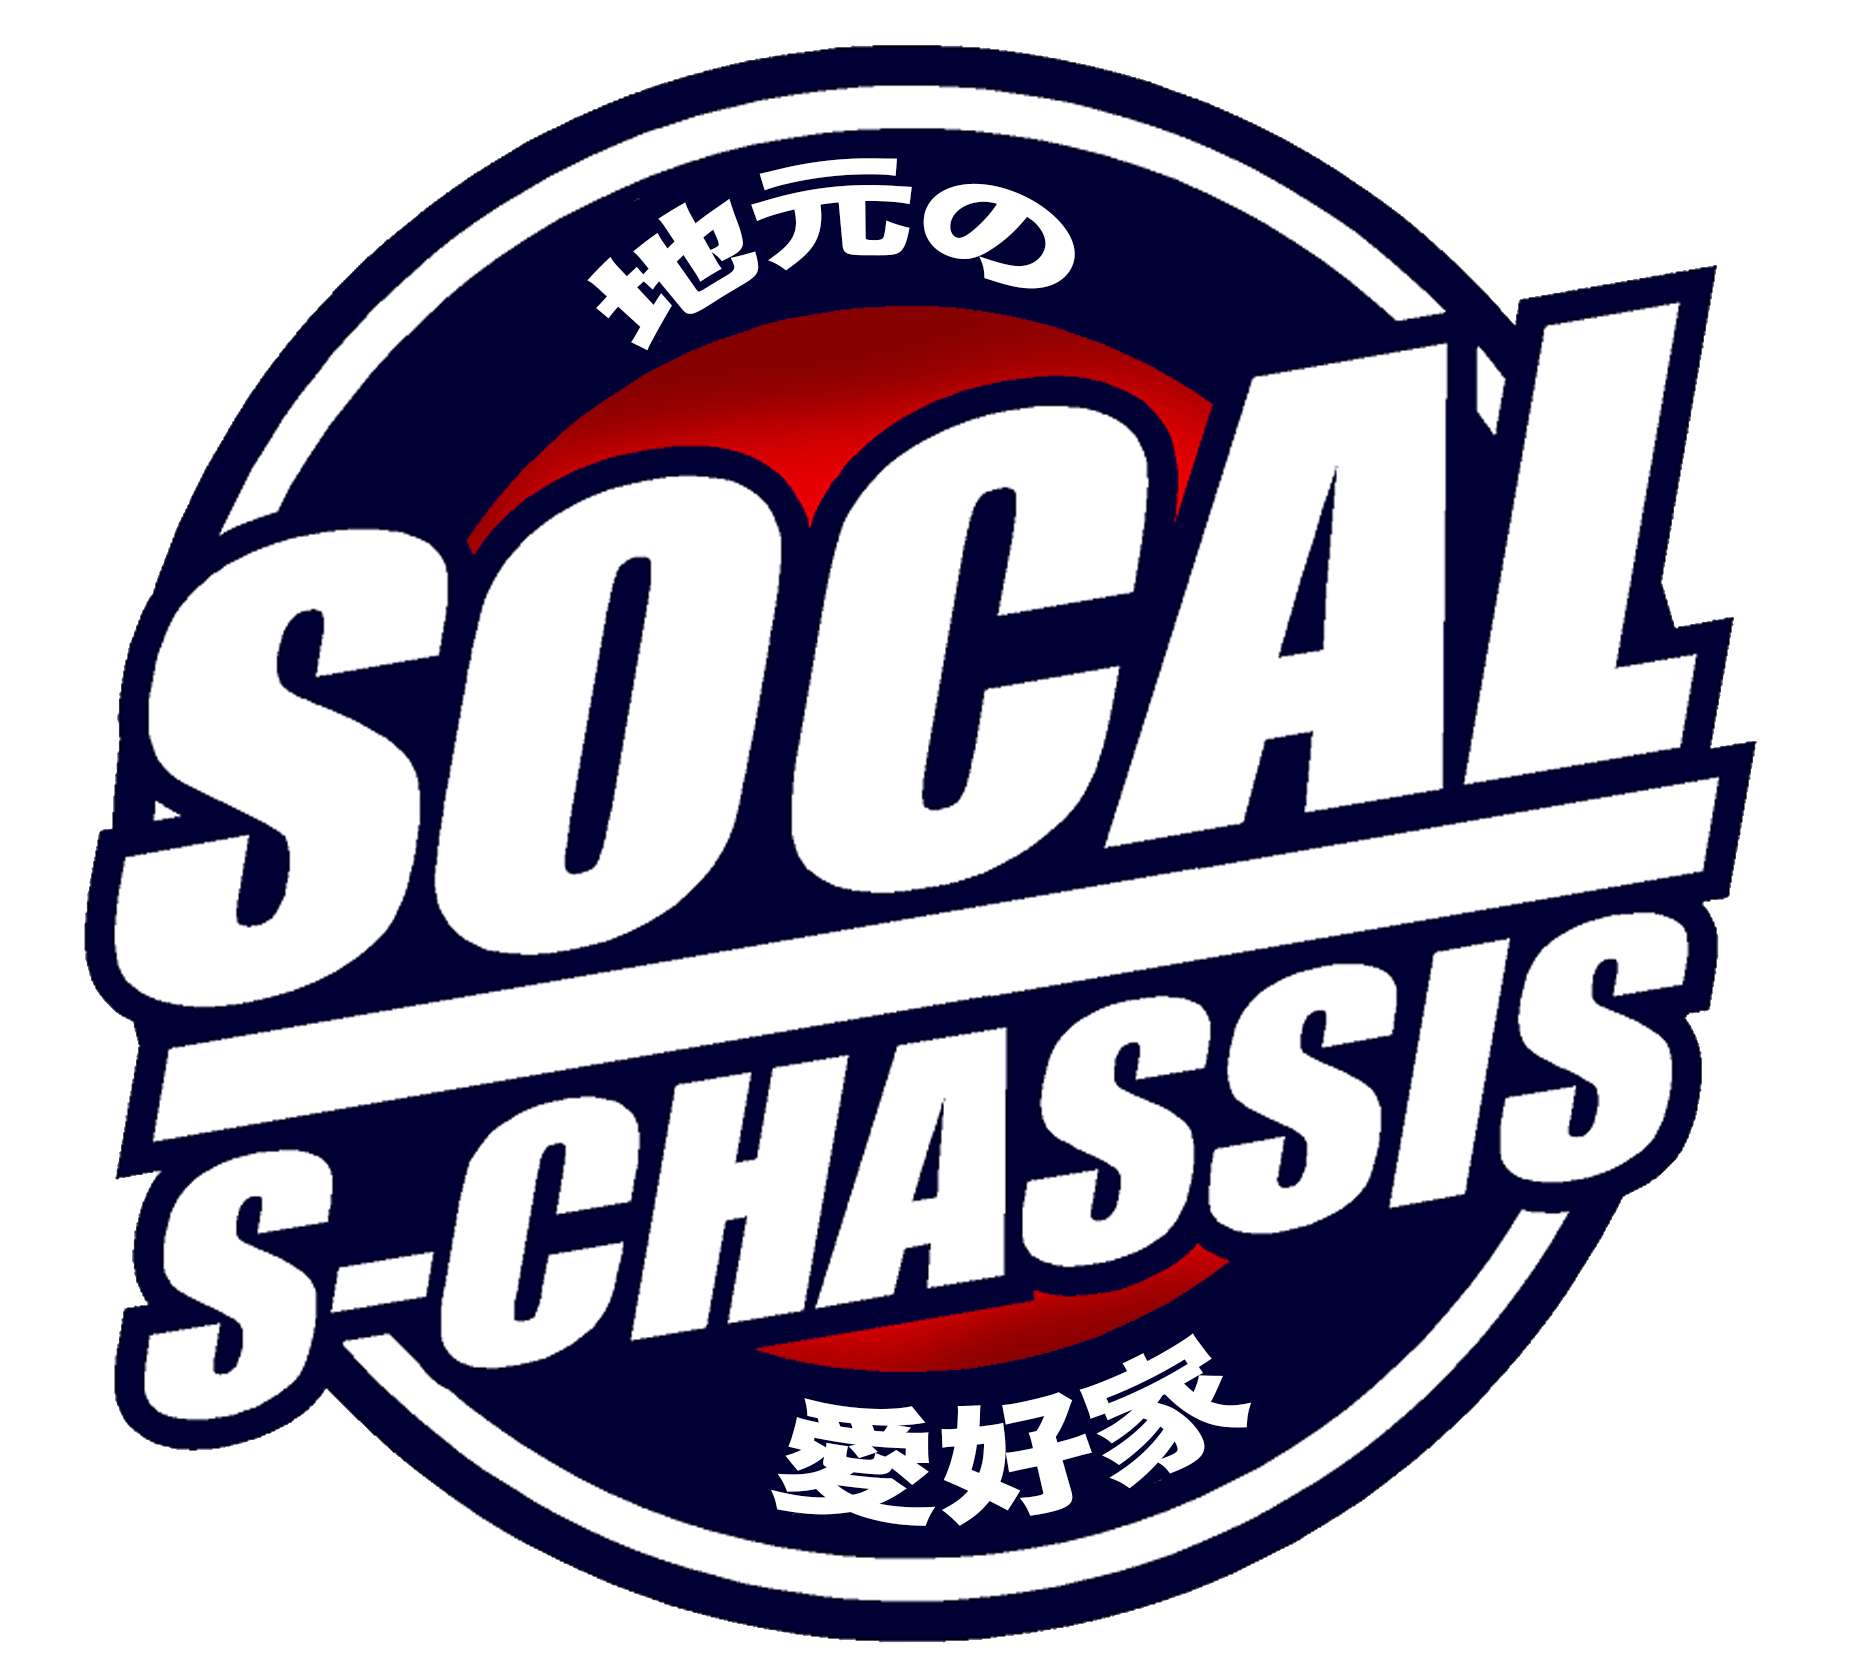 Socal S-Chassis